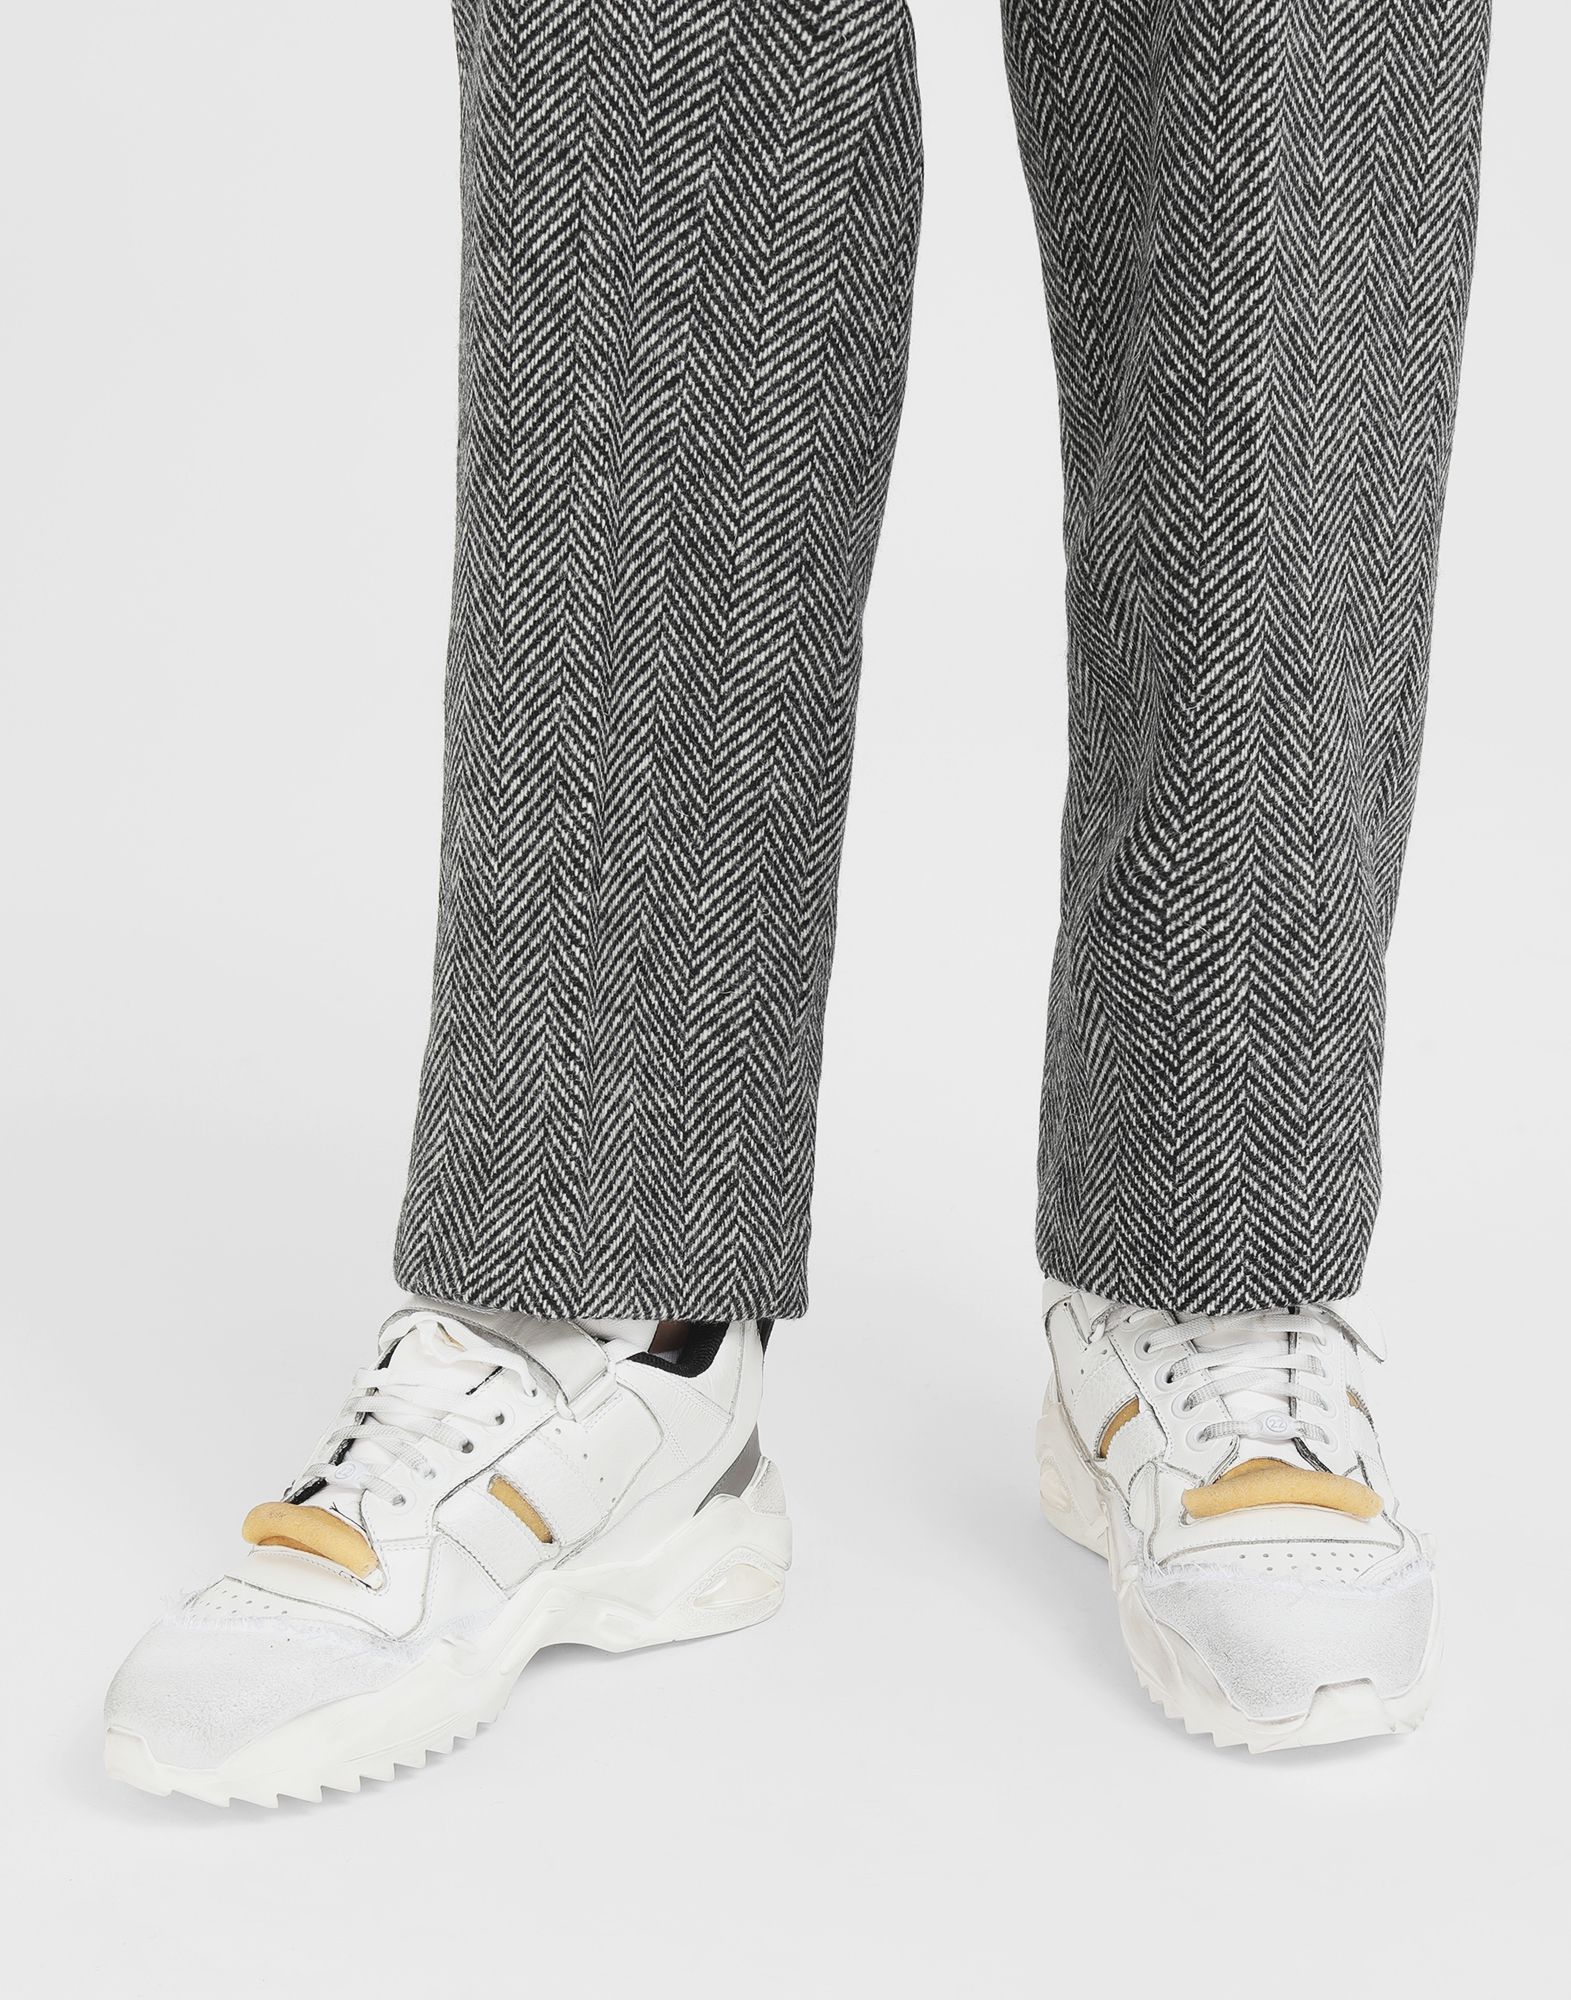 MAISON MARGIELA Retro Fit sneakers Sneakers Man r